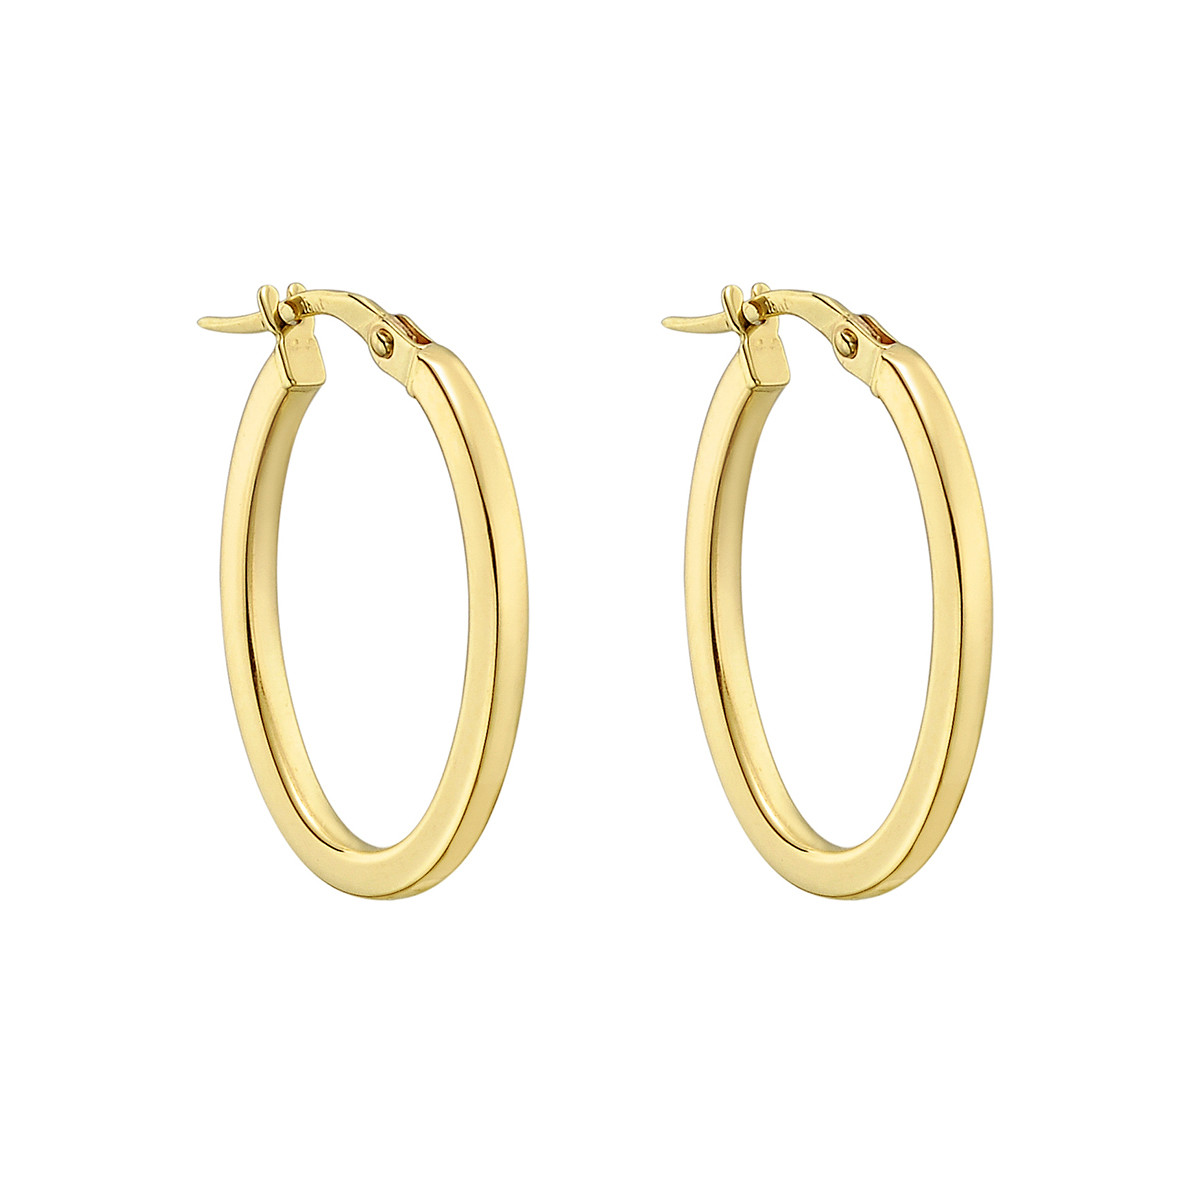 Medium 18k Yellow Gold Oval Hoop Earrings